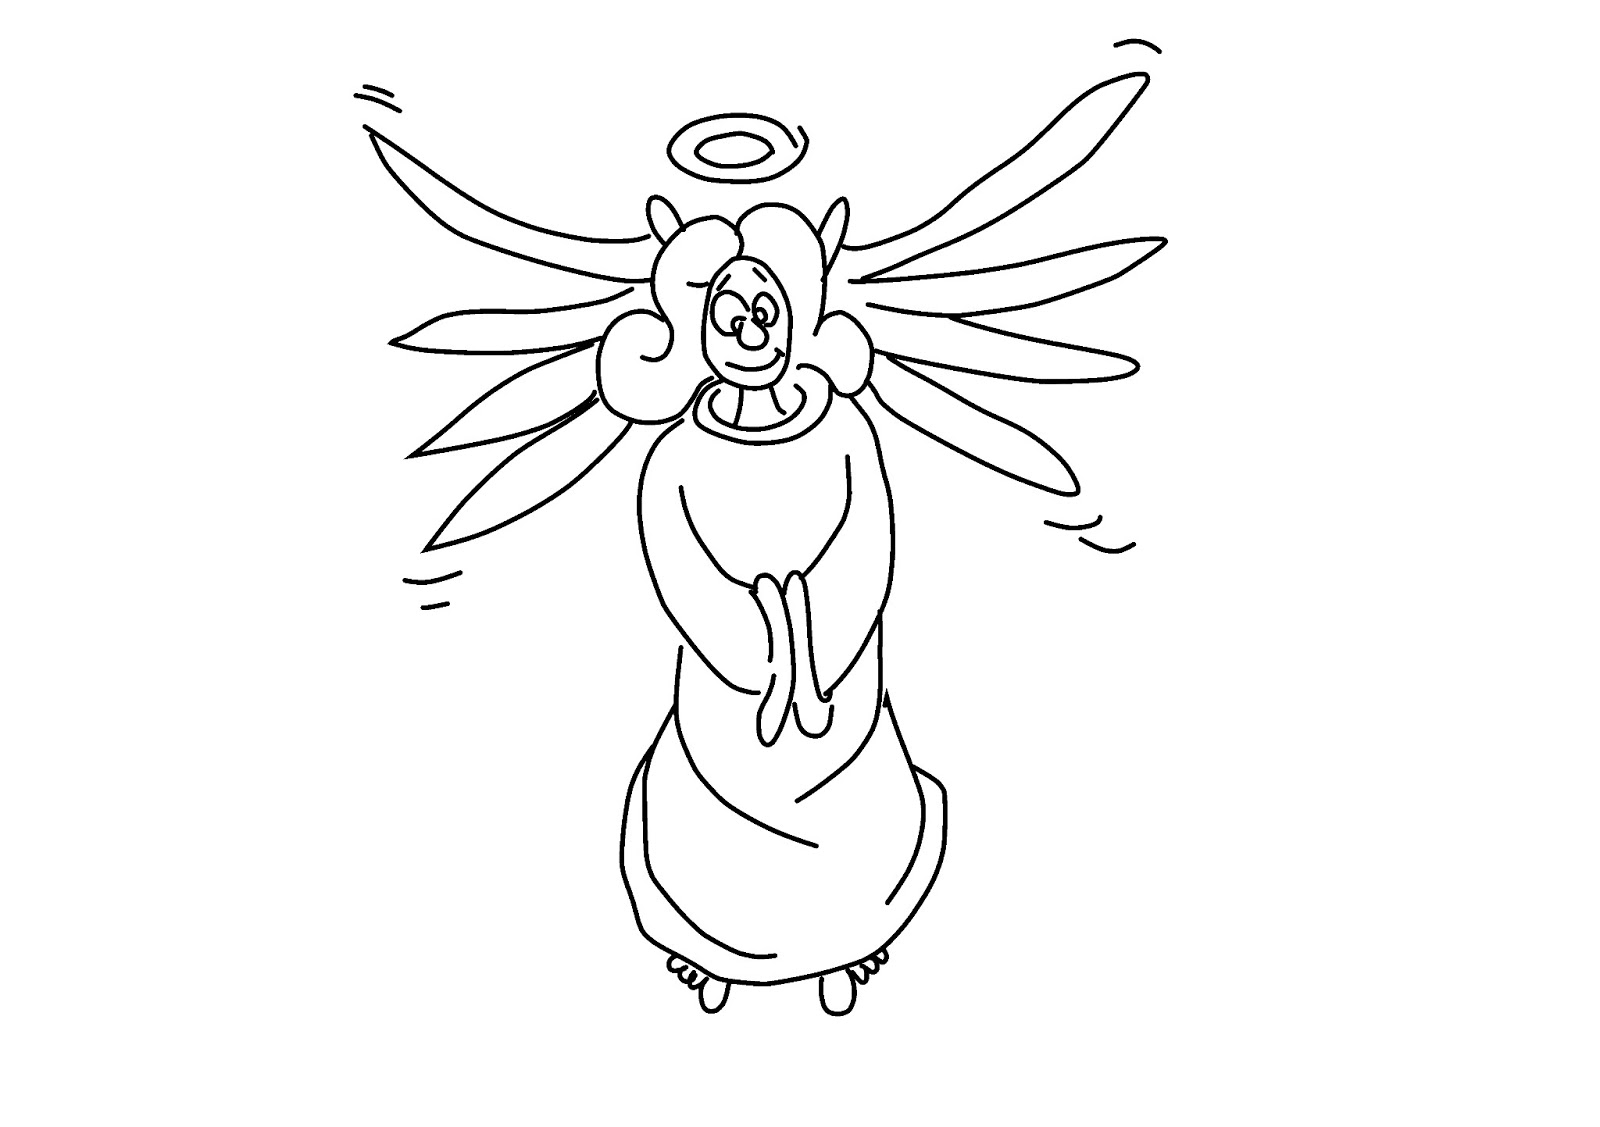 cartoon angel coloring pages | Free Pages for Coloring: Crazy old angel coloring page ...